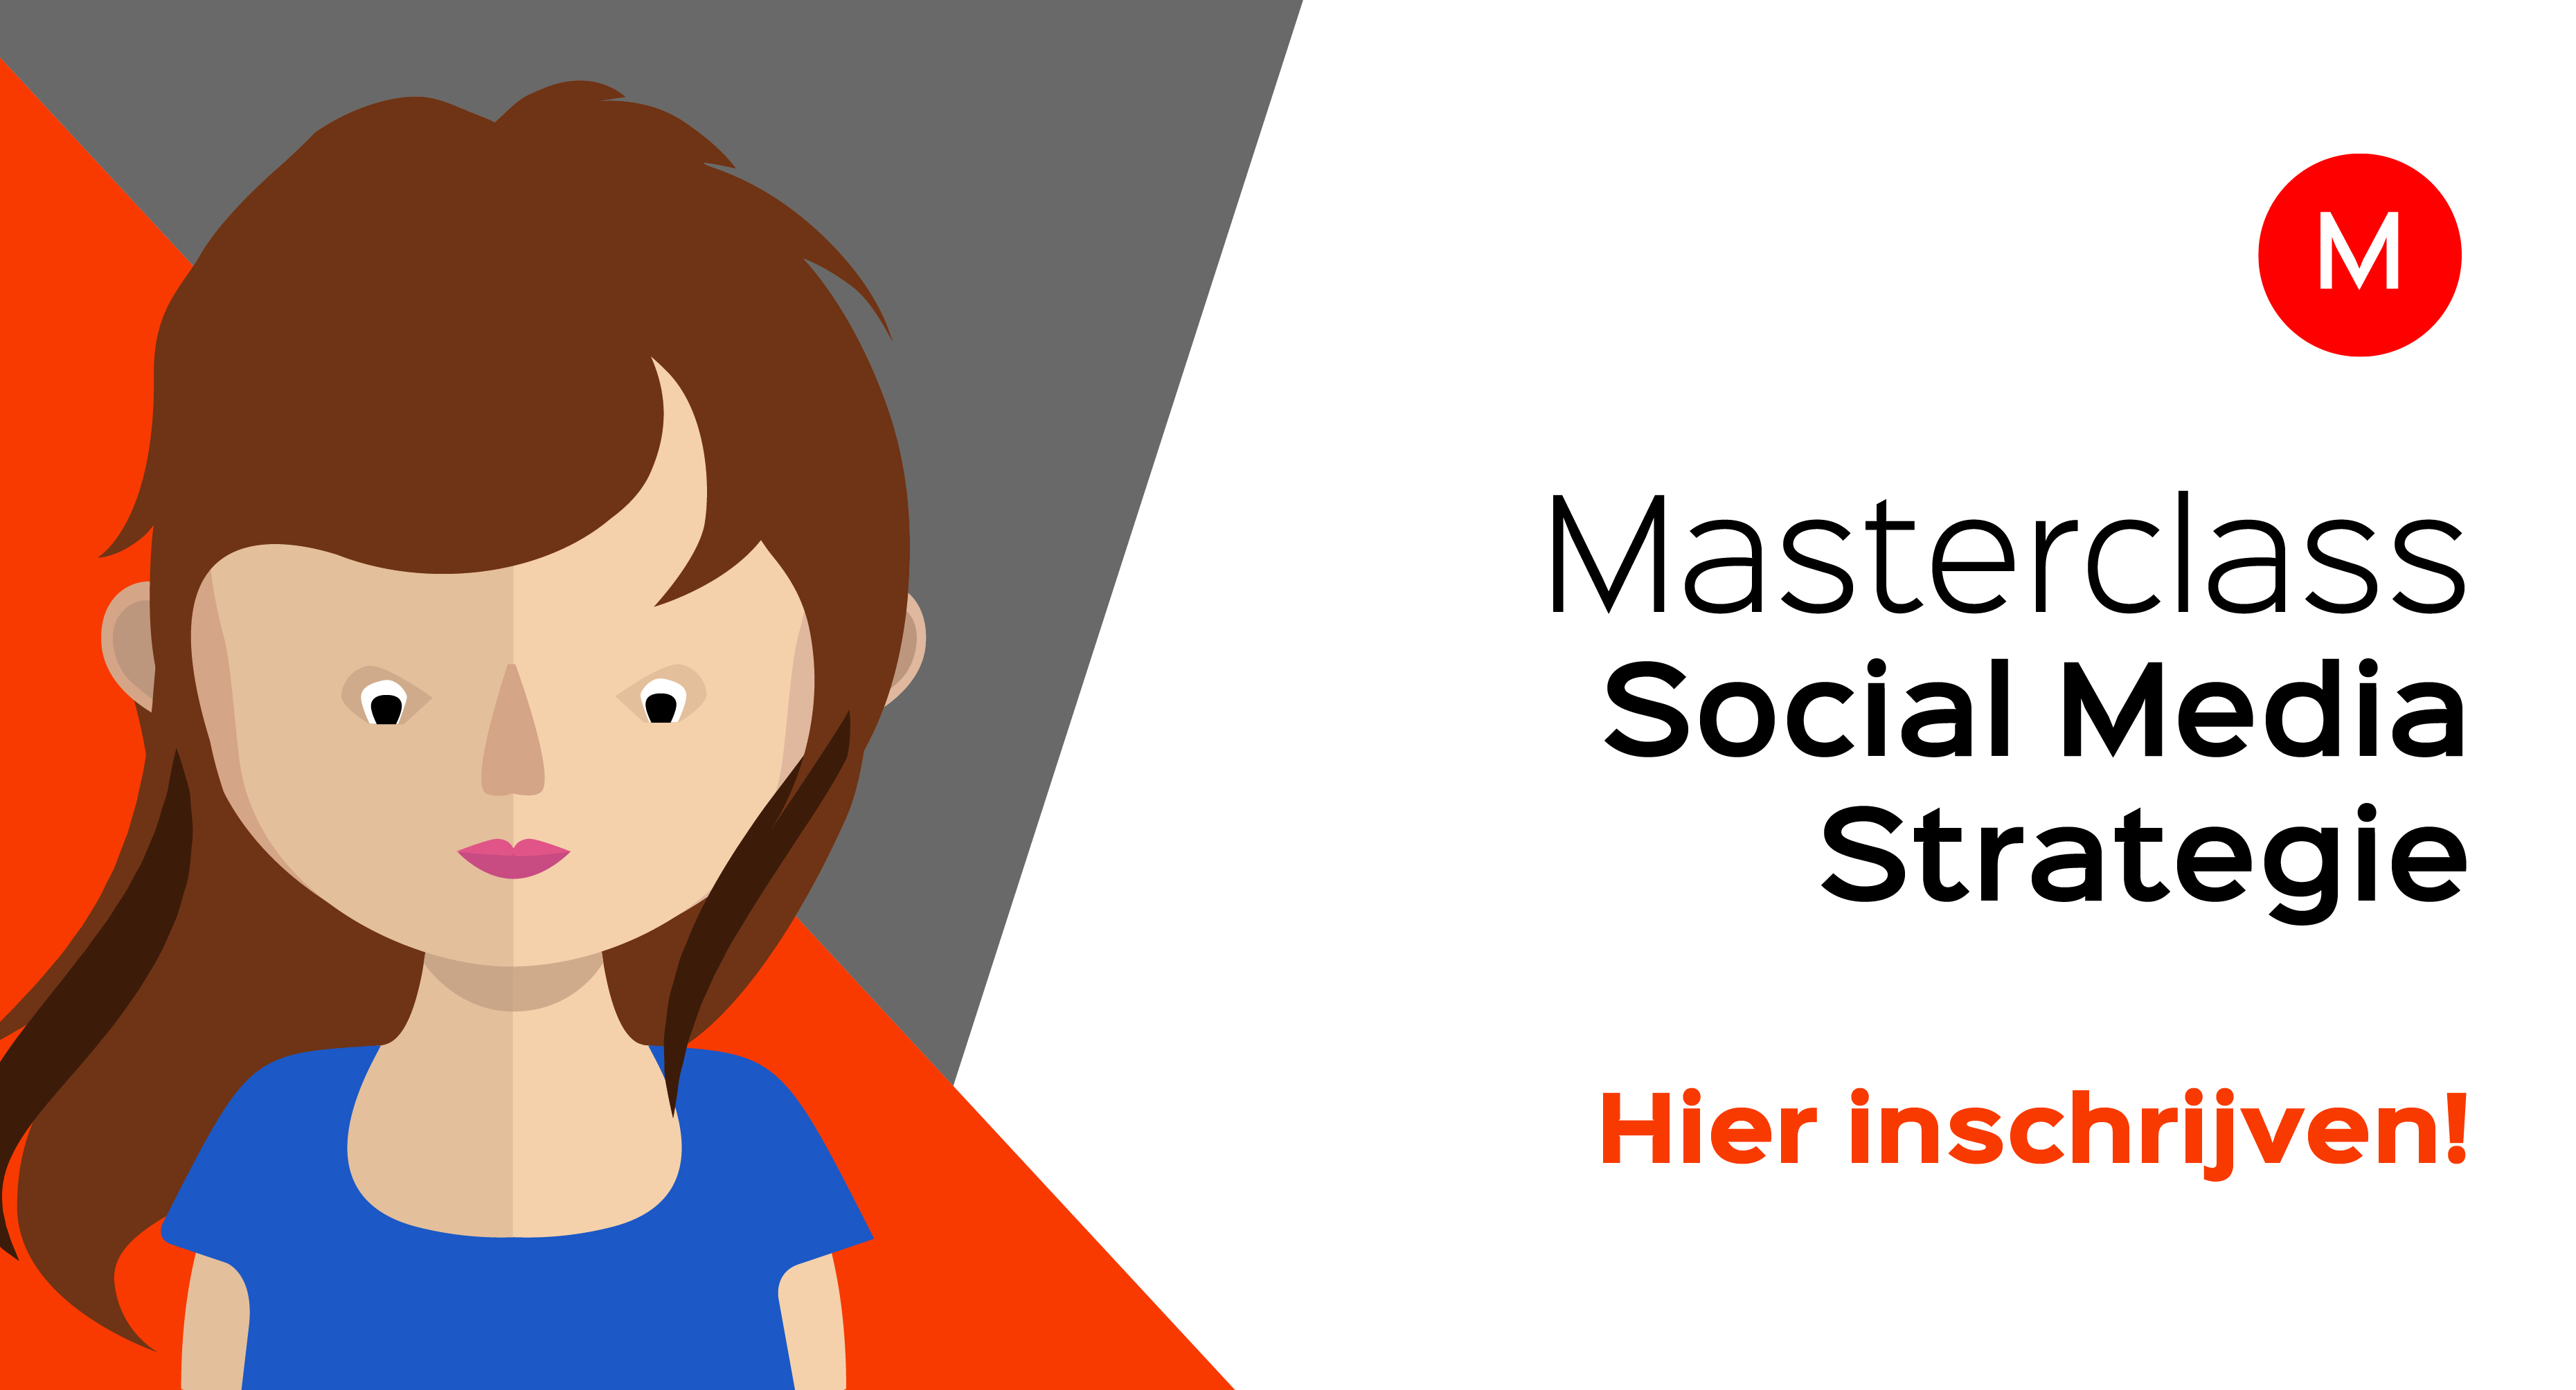 Masterclass Social Media Strategie